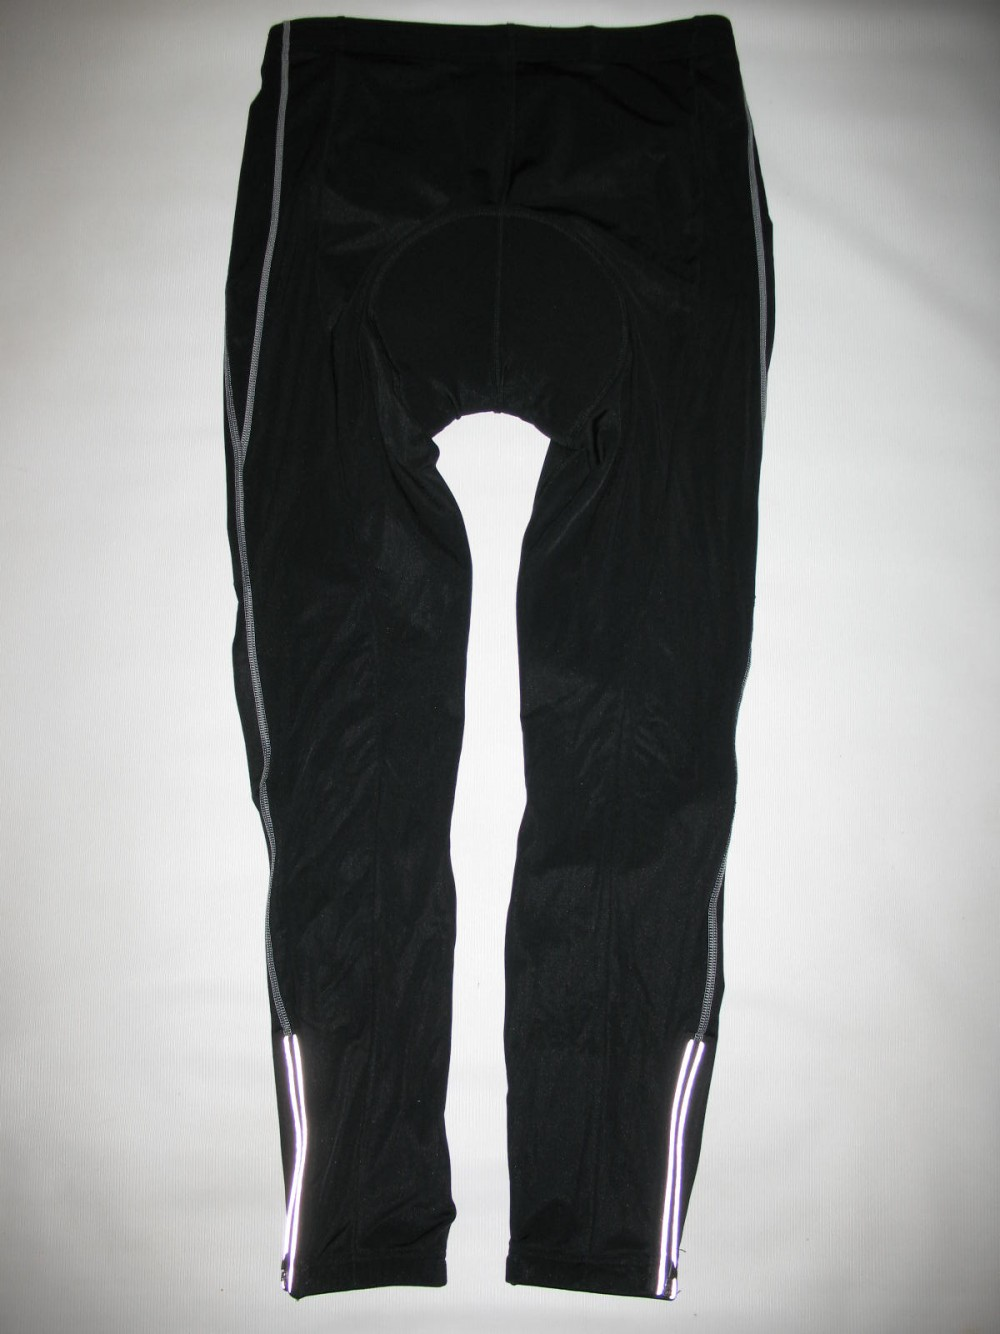 Велобрюки CRANE windstopper cycling pants (размер 54-L/XL) - 2